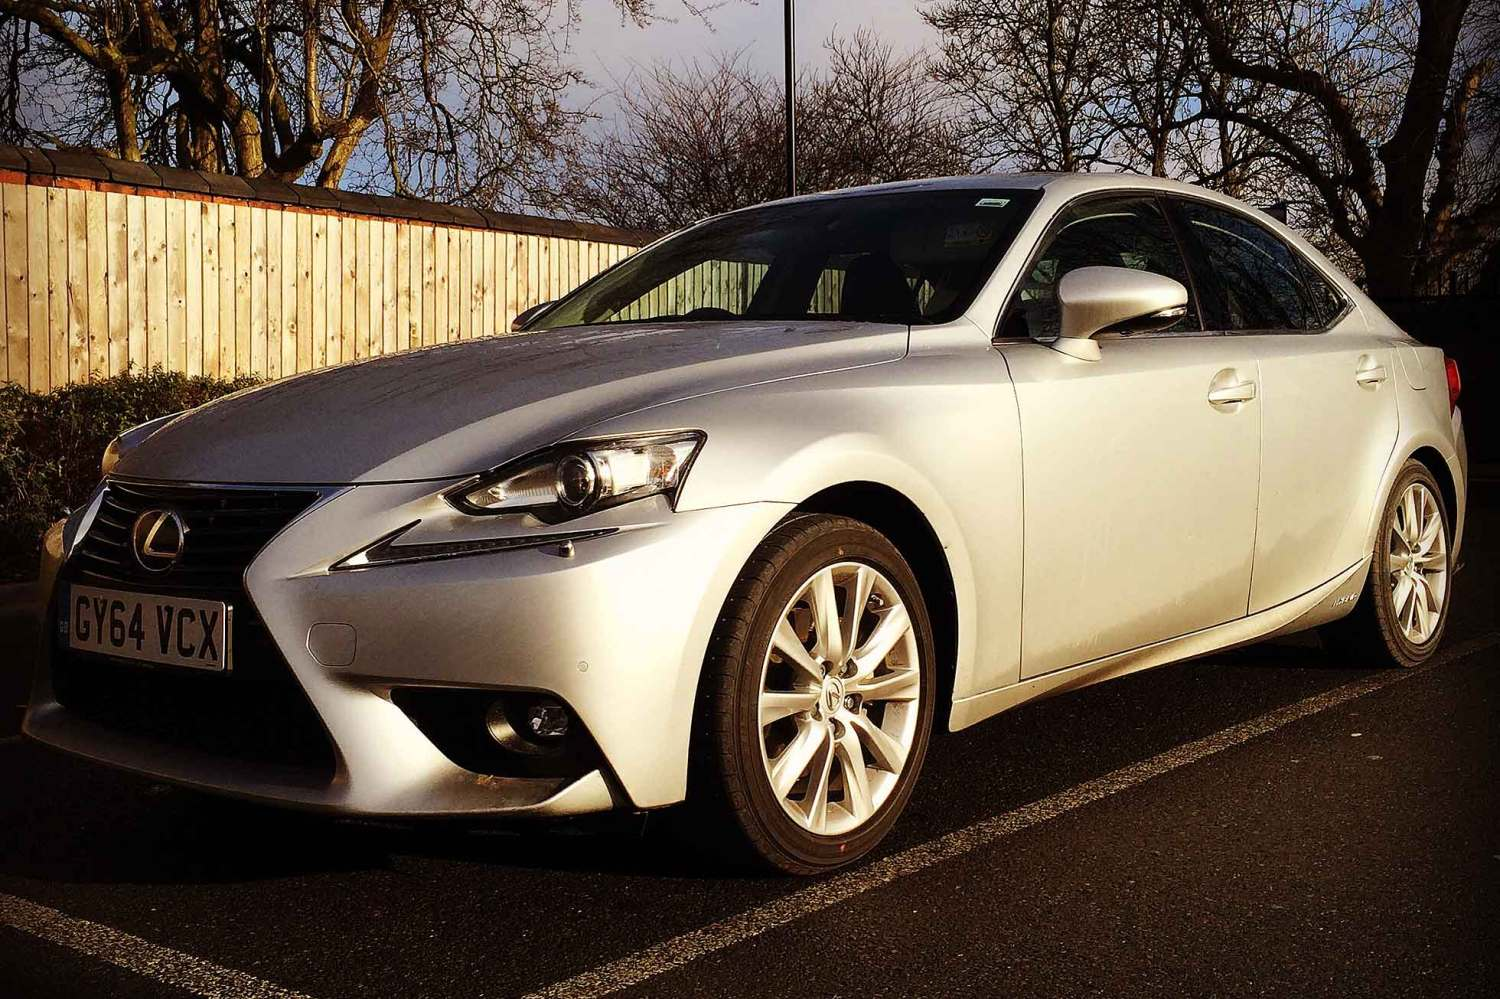 Lexus IS 300h long-term review month 2